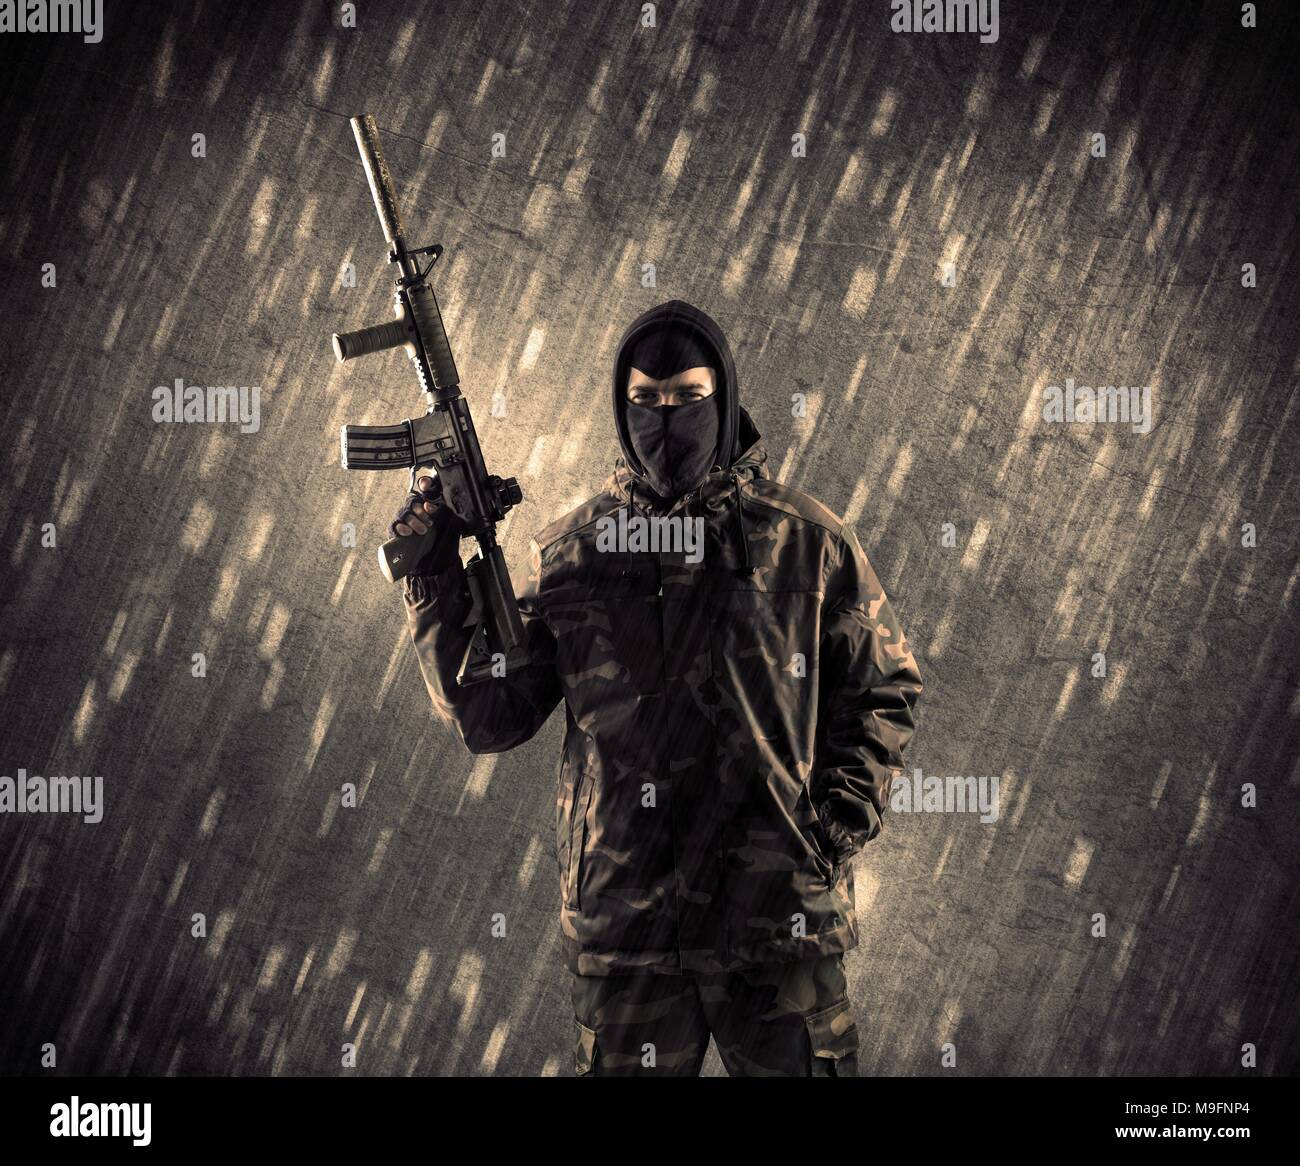 Close up of an armed terrorist man with mask on rainy background - Stock Image